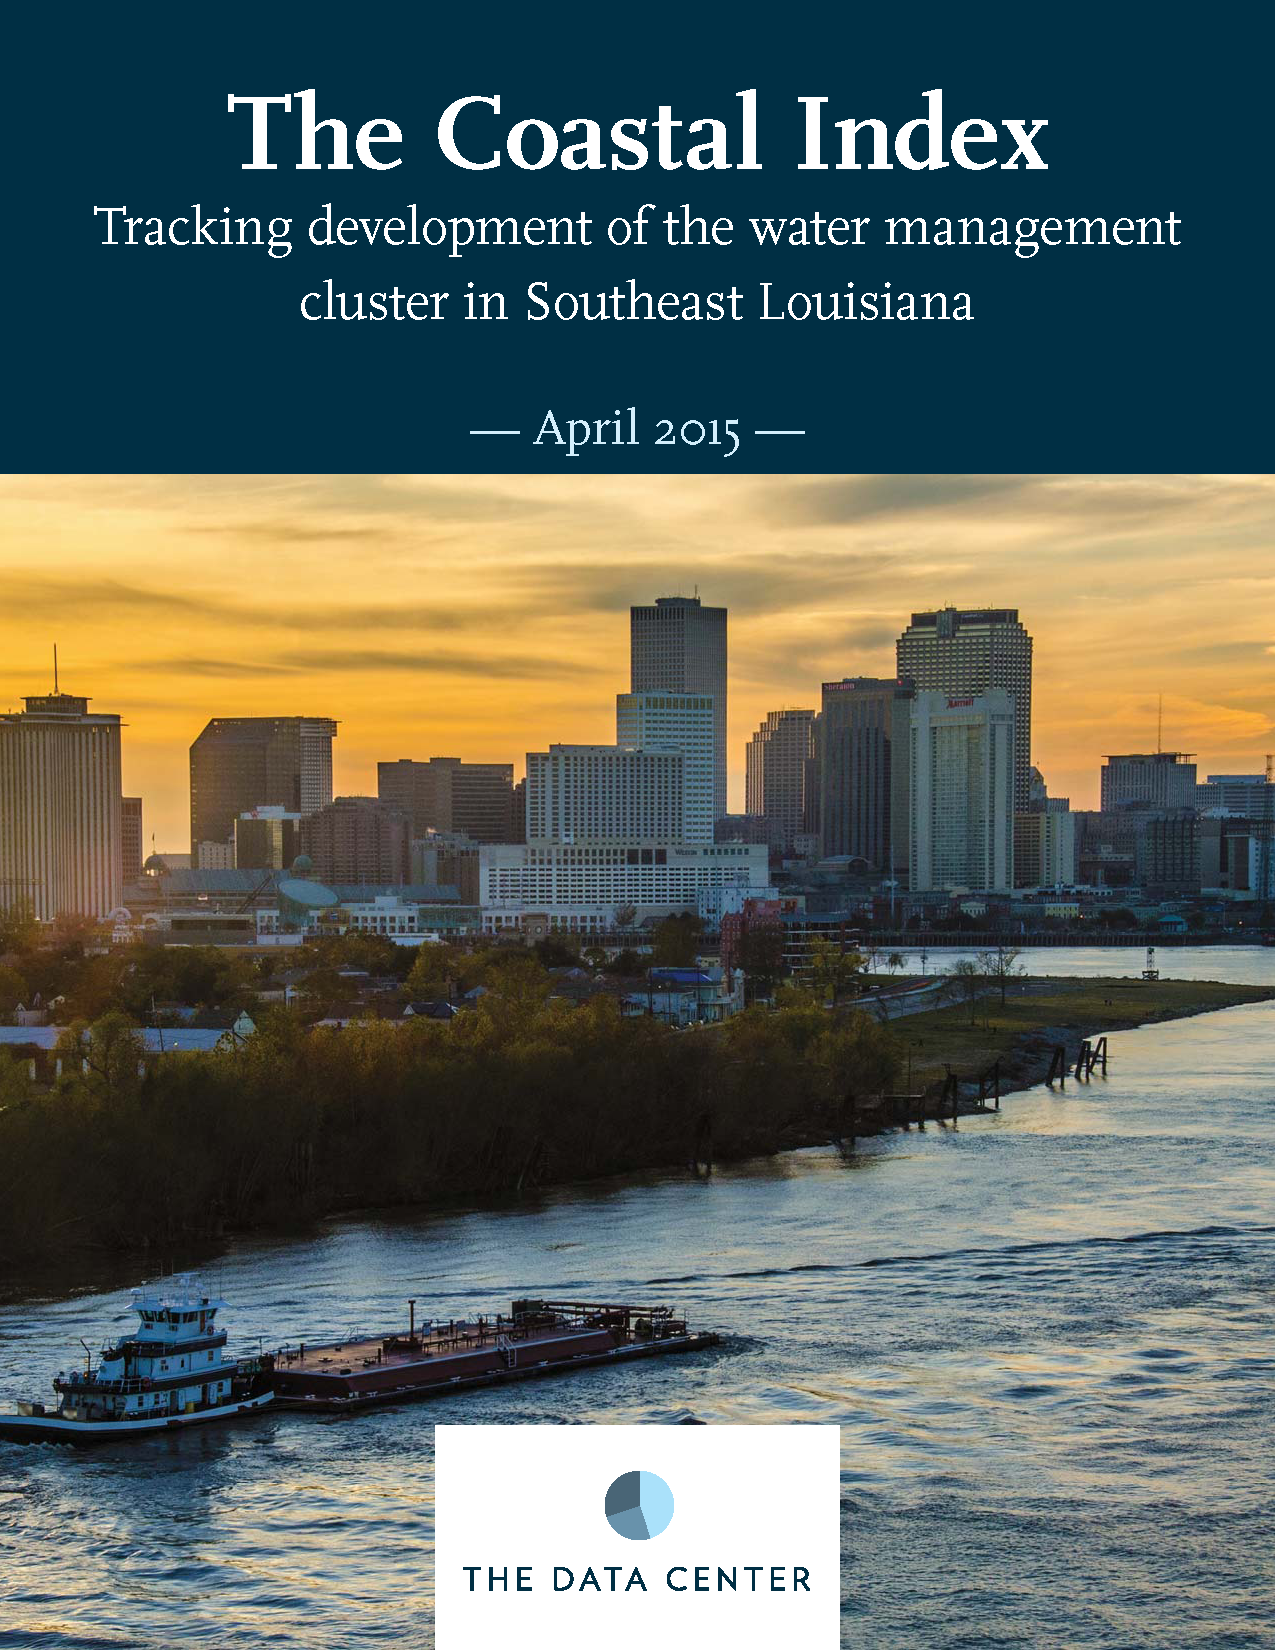 The Coastal Index: Tracking development of the water management cluster in Southeast Louisiana